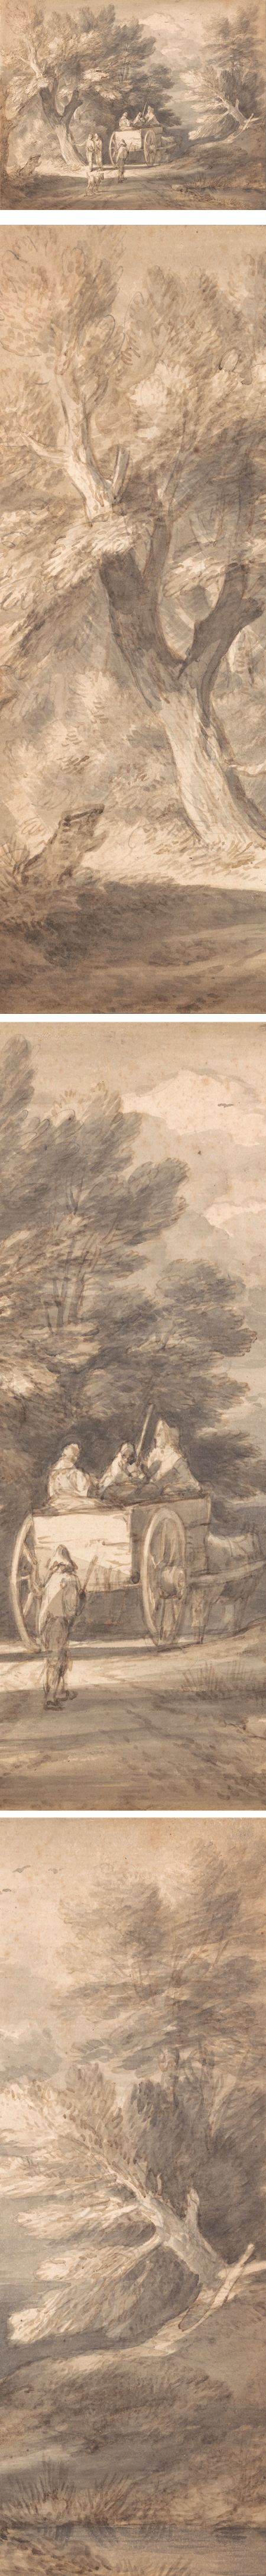 Wooded Landscape with Country Cart and Figures Walking down a Lane, Thomas Gainsborough ink and wash drawing